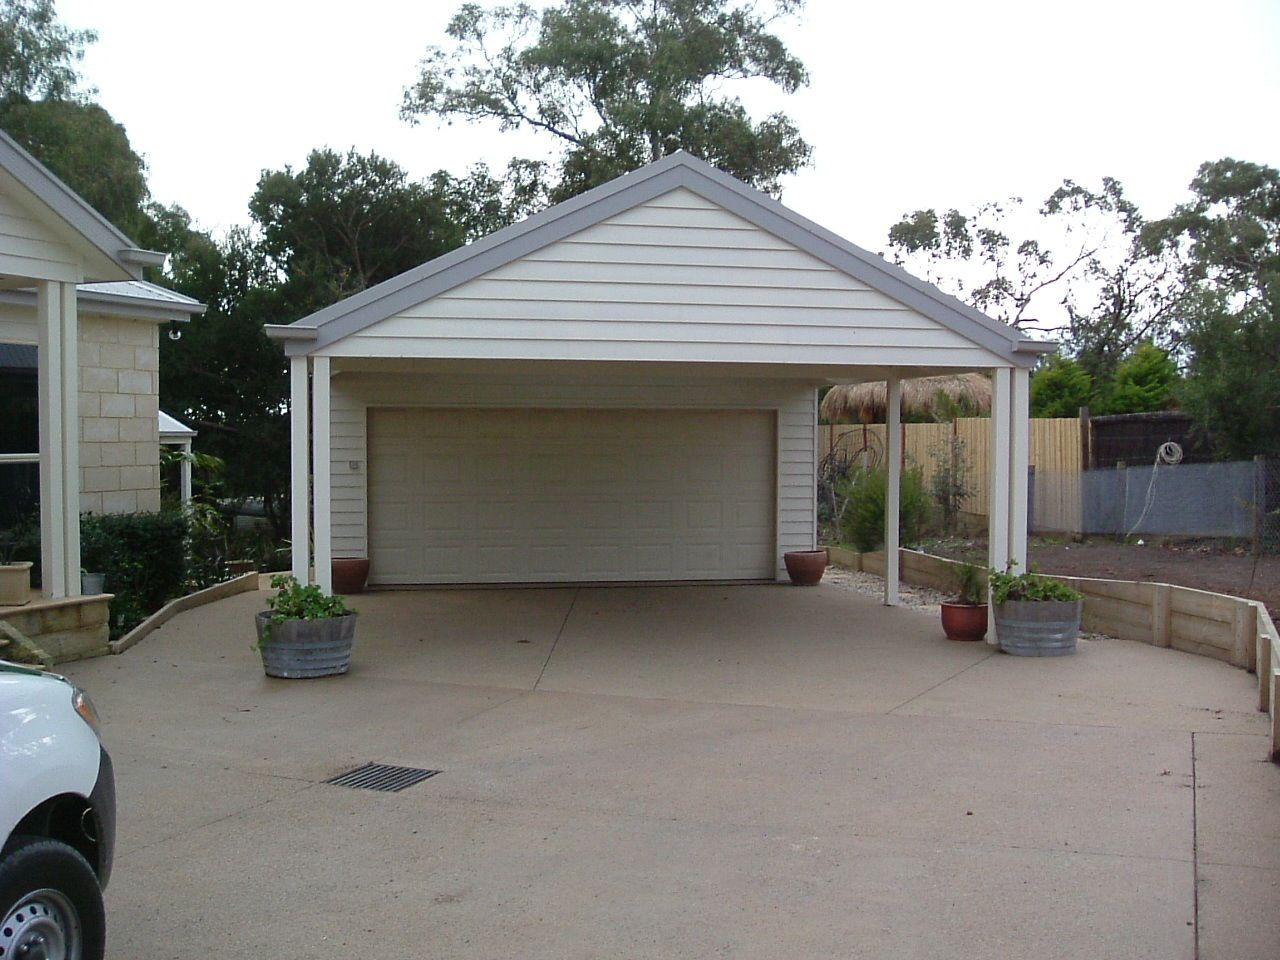 Carport Ideas Carport Ideas Pinterest Carport Ideas